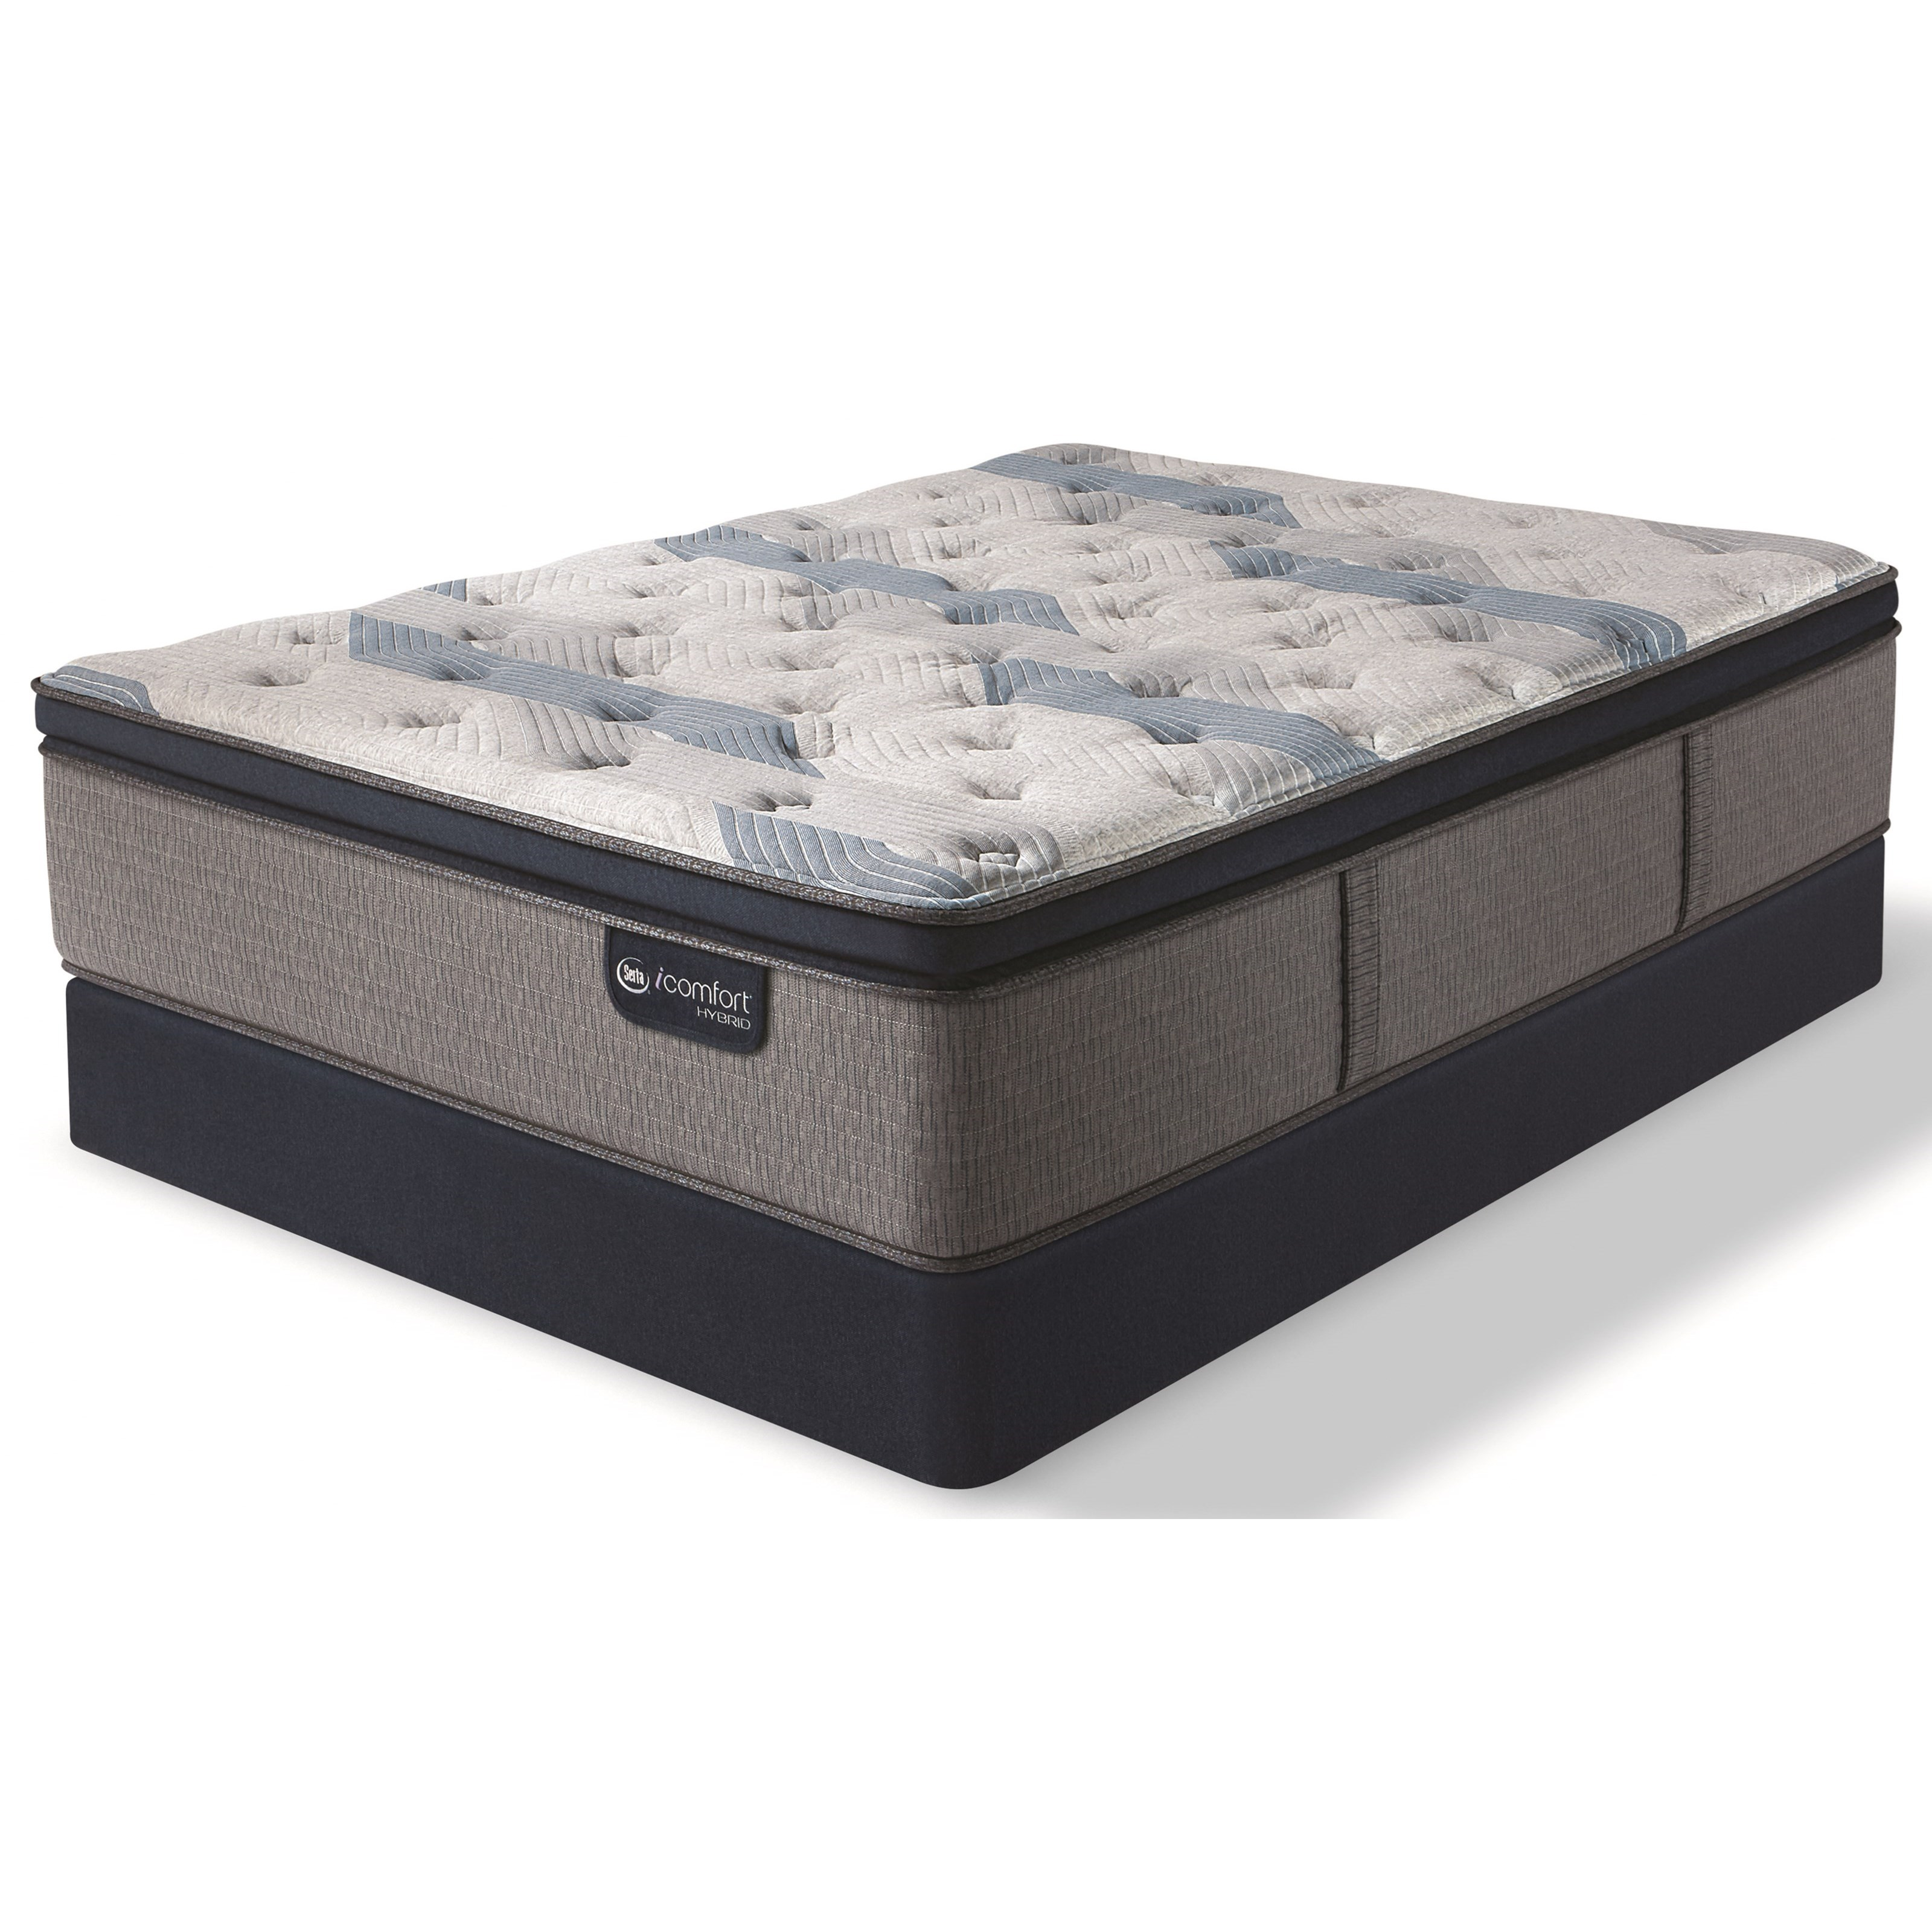 Serta iComfort Hybrid Blue Fusion 300 Plush PT King Plush Pillow Top Hybrid Low Pro Set - Item Number: 300PlushPT-K+2xFndtnLP-TXL